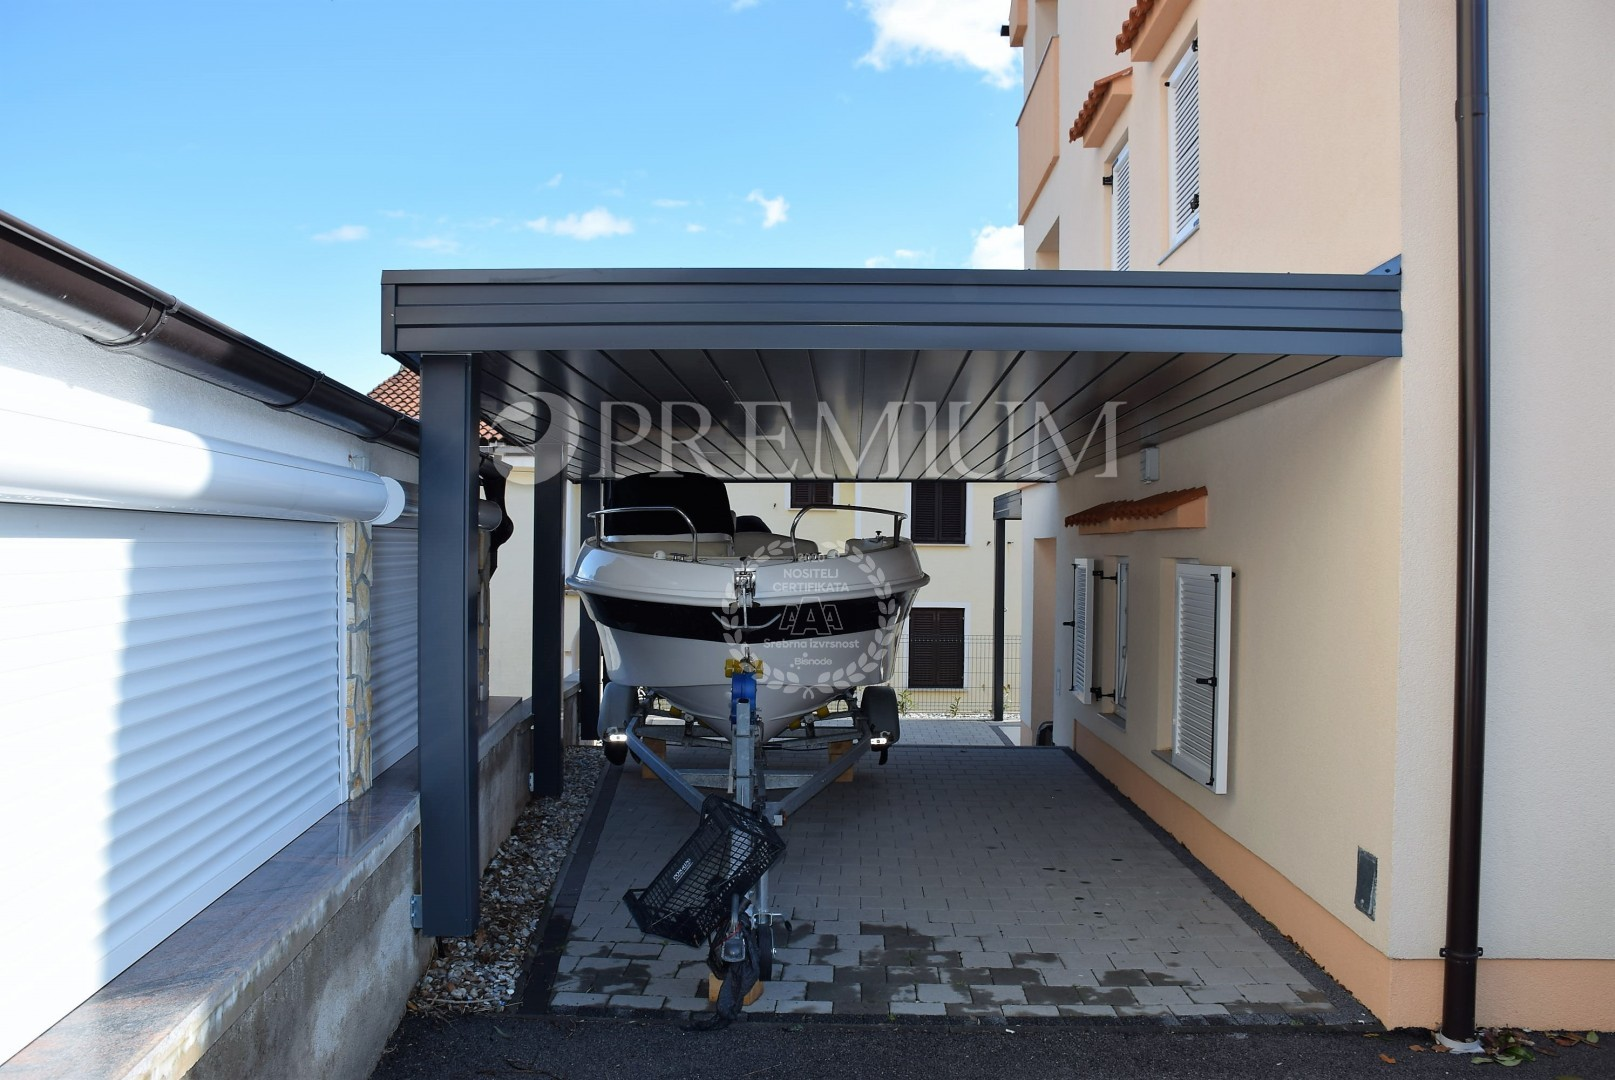 Amazing Čižići, Sale, Apartment Of 55 M2 On The Ground Floor With A Garden,  Apartment